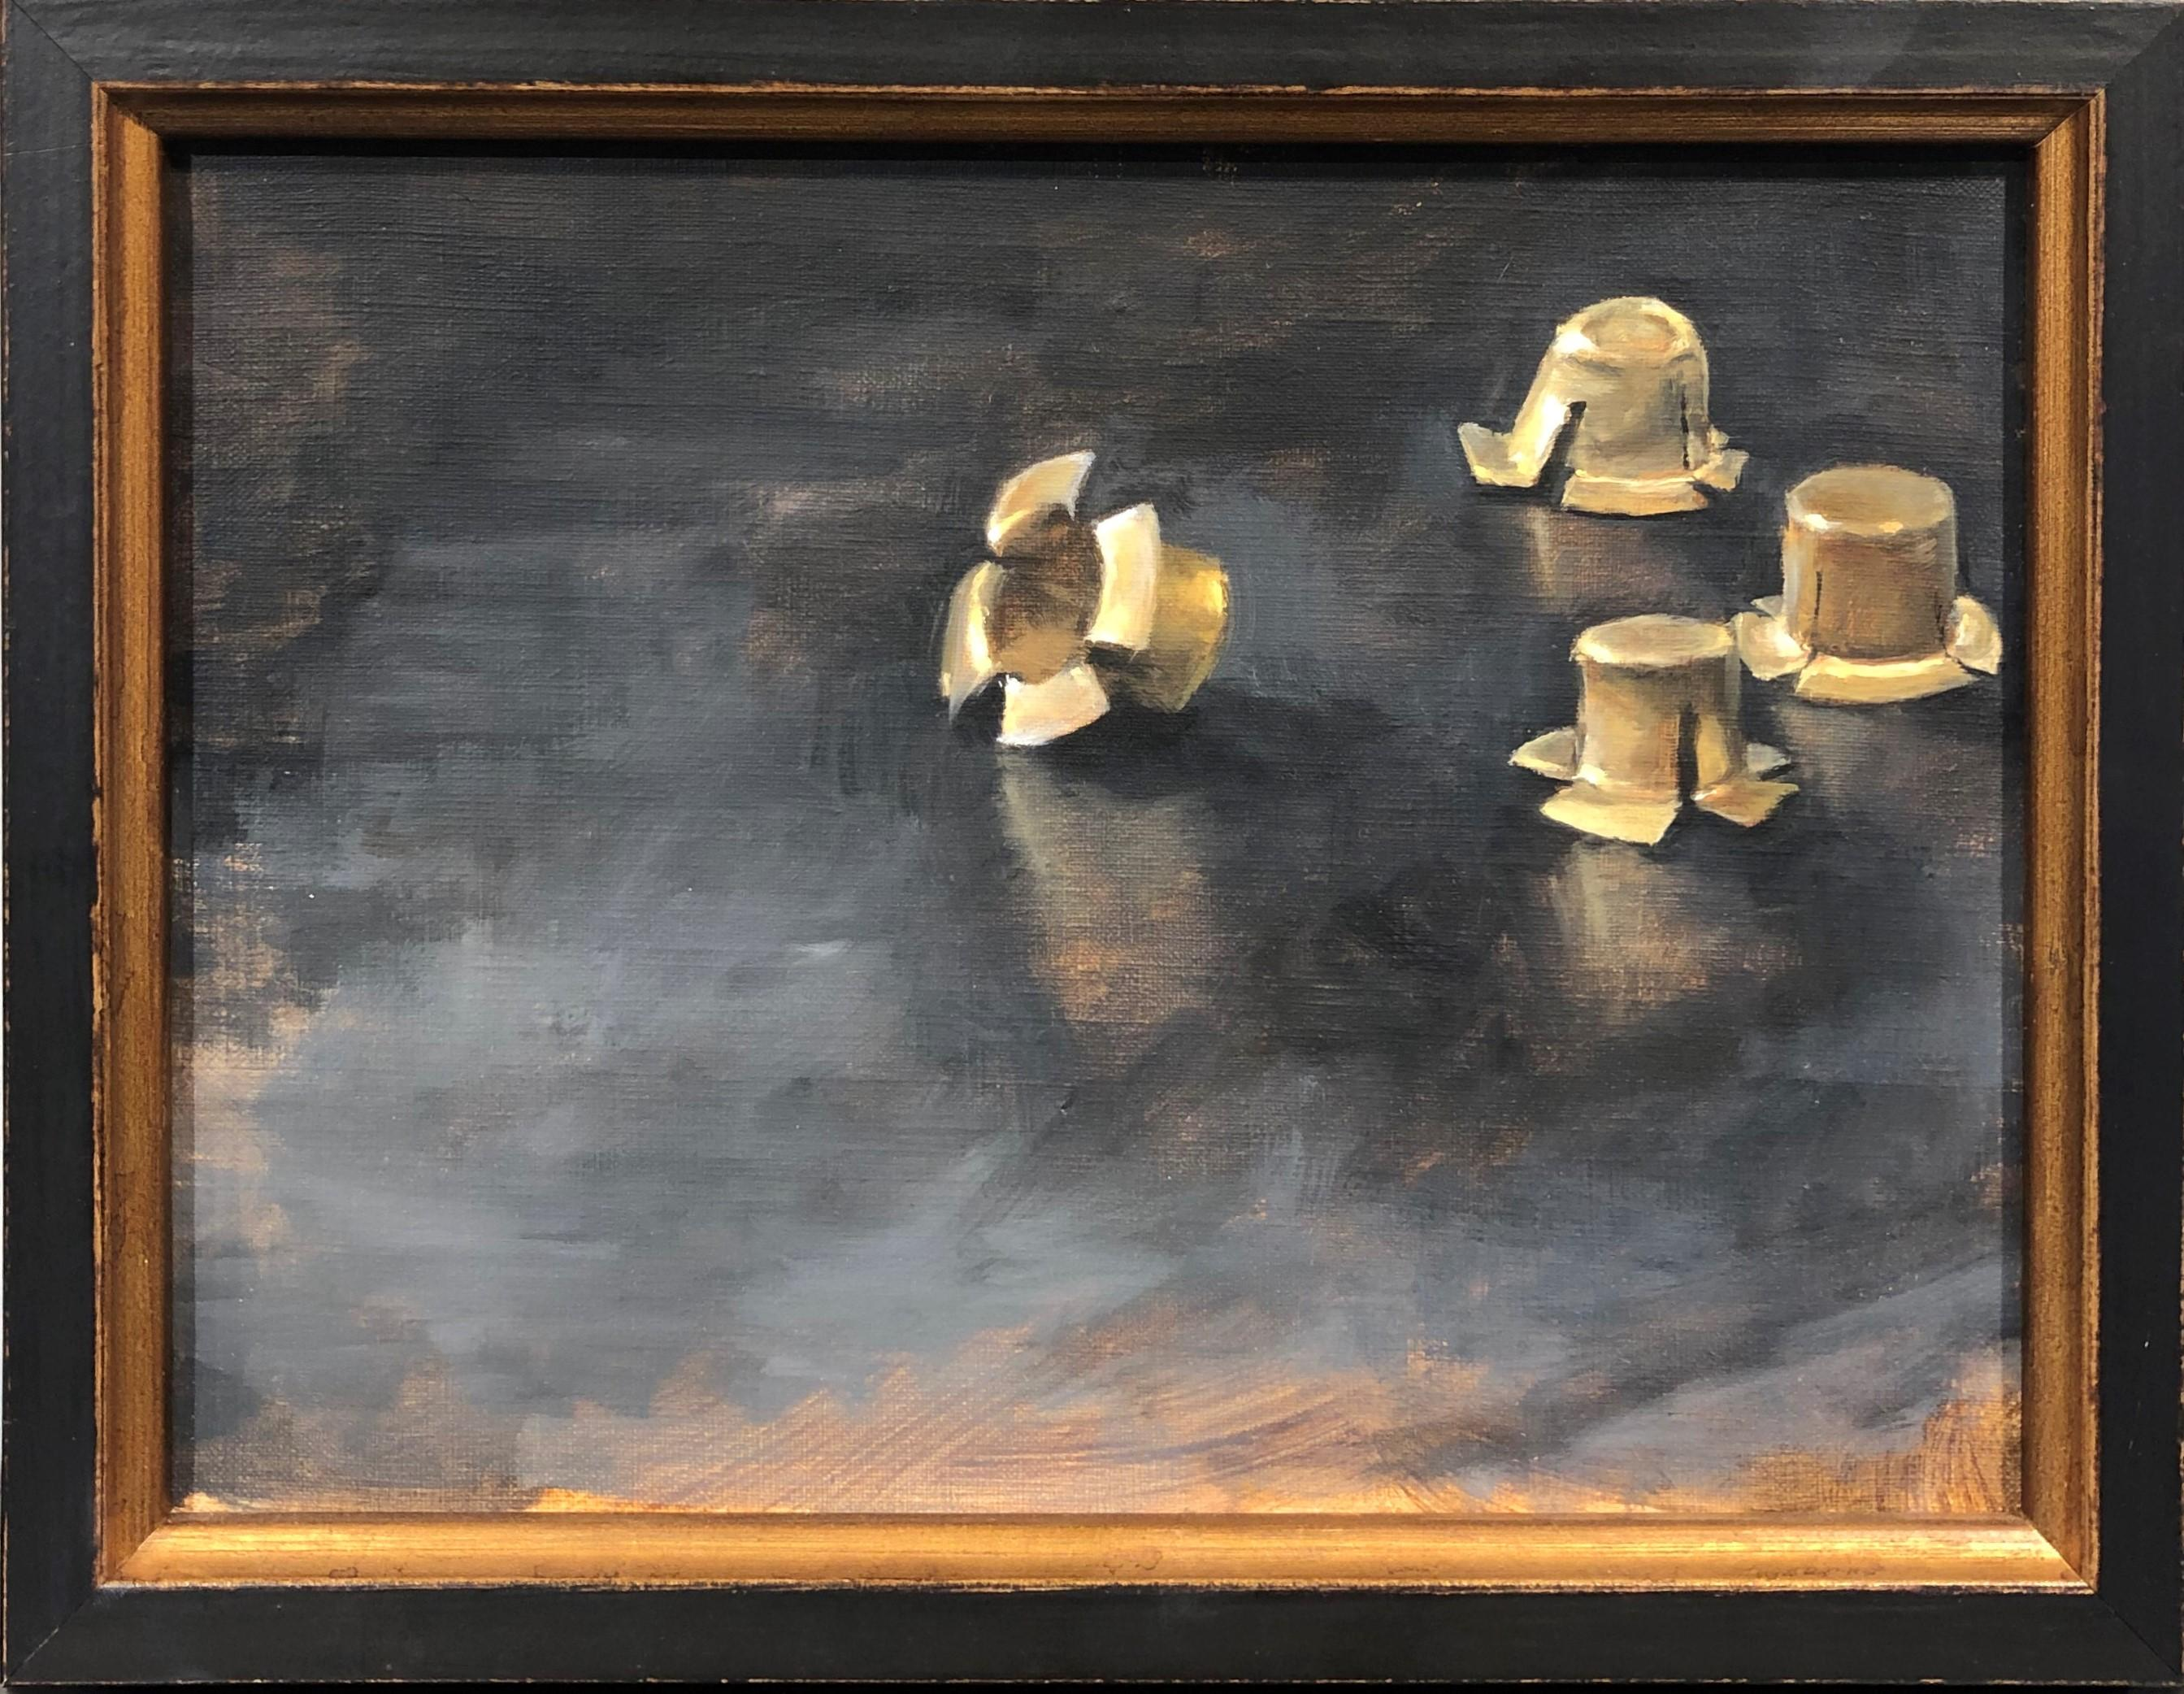 Caps, Still Life of Percussion Caps Used During the Civil War, Oil on Linen